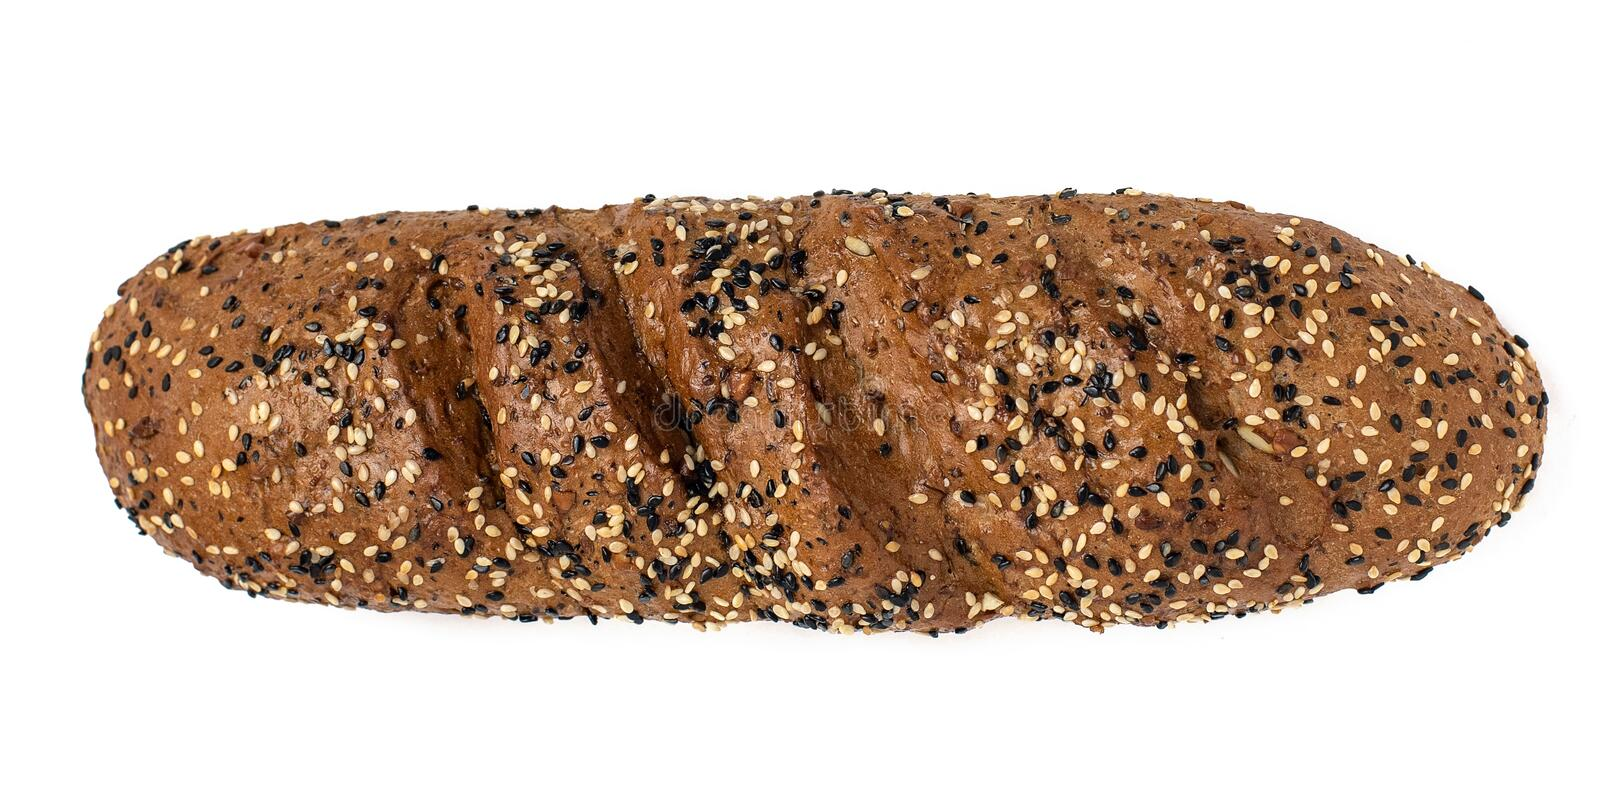 Top view of grain bread with different seeds isolated on white background royalty free stock image